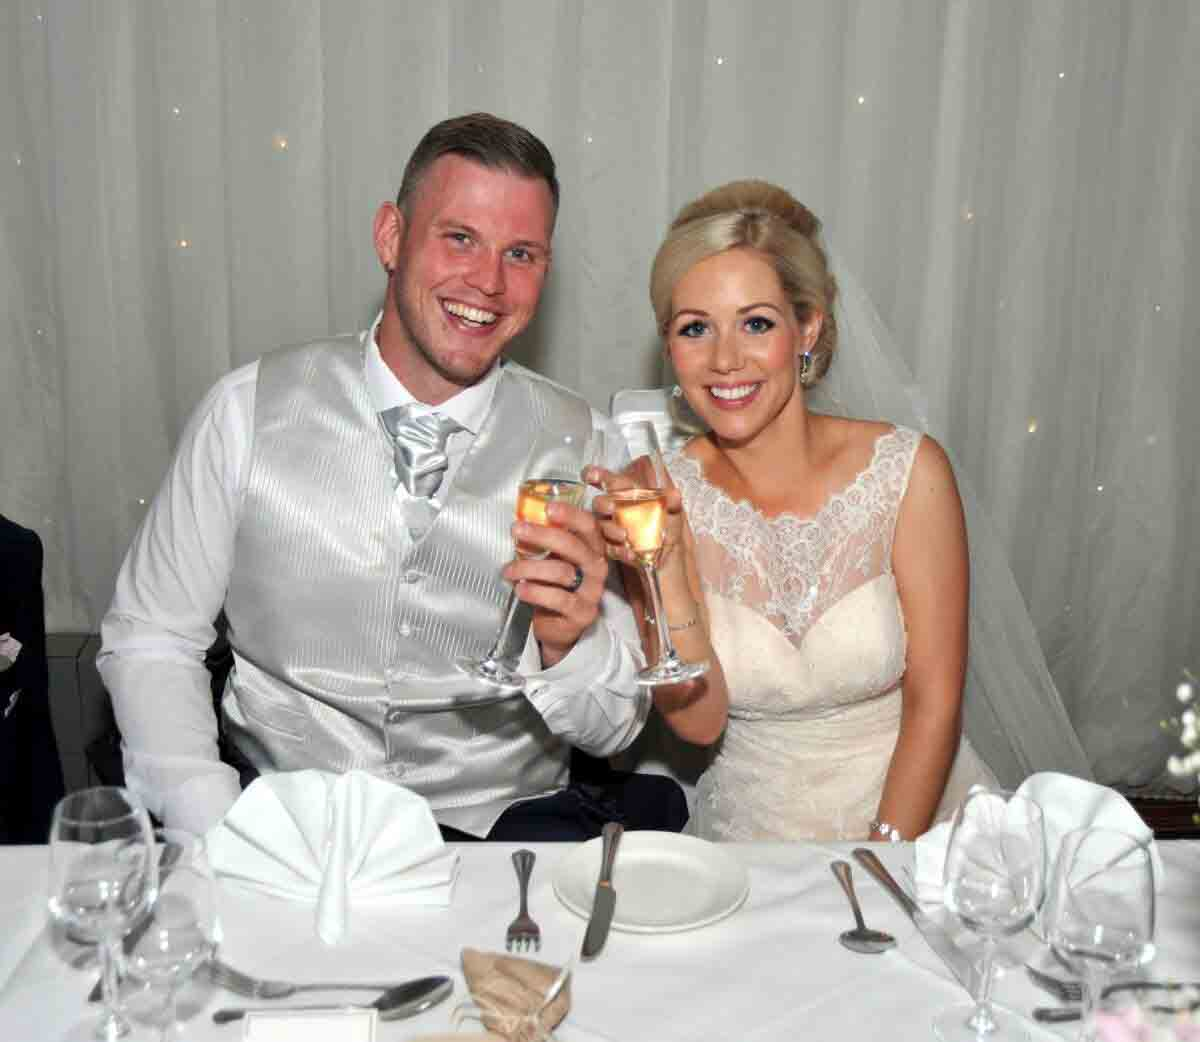 Happy couple toasting with champagne